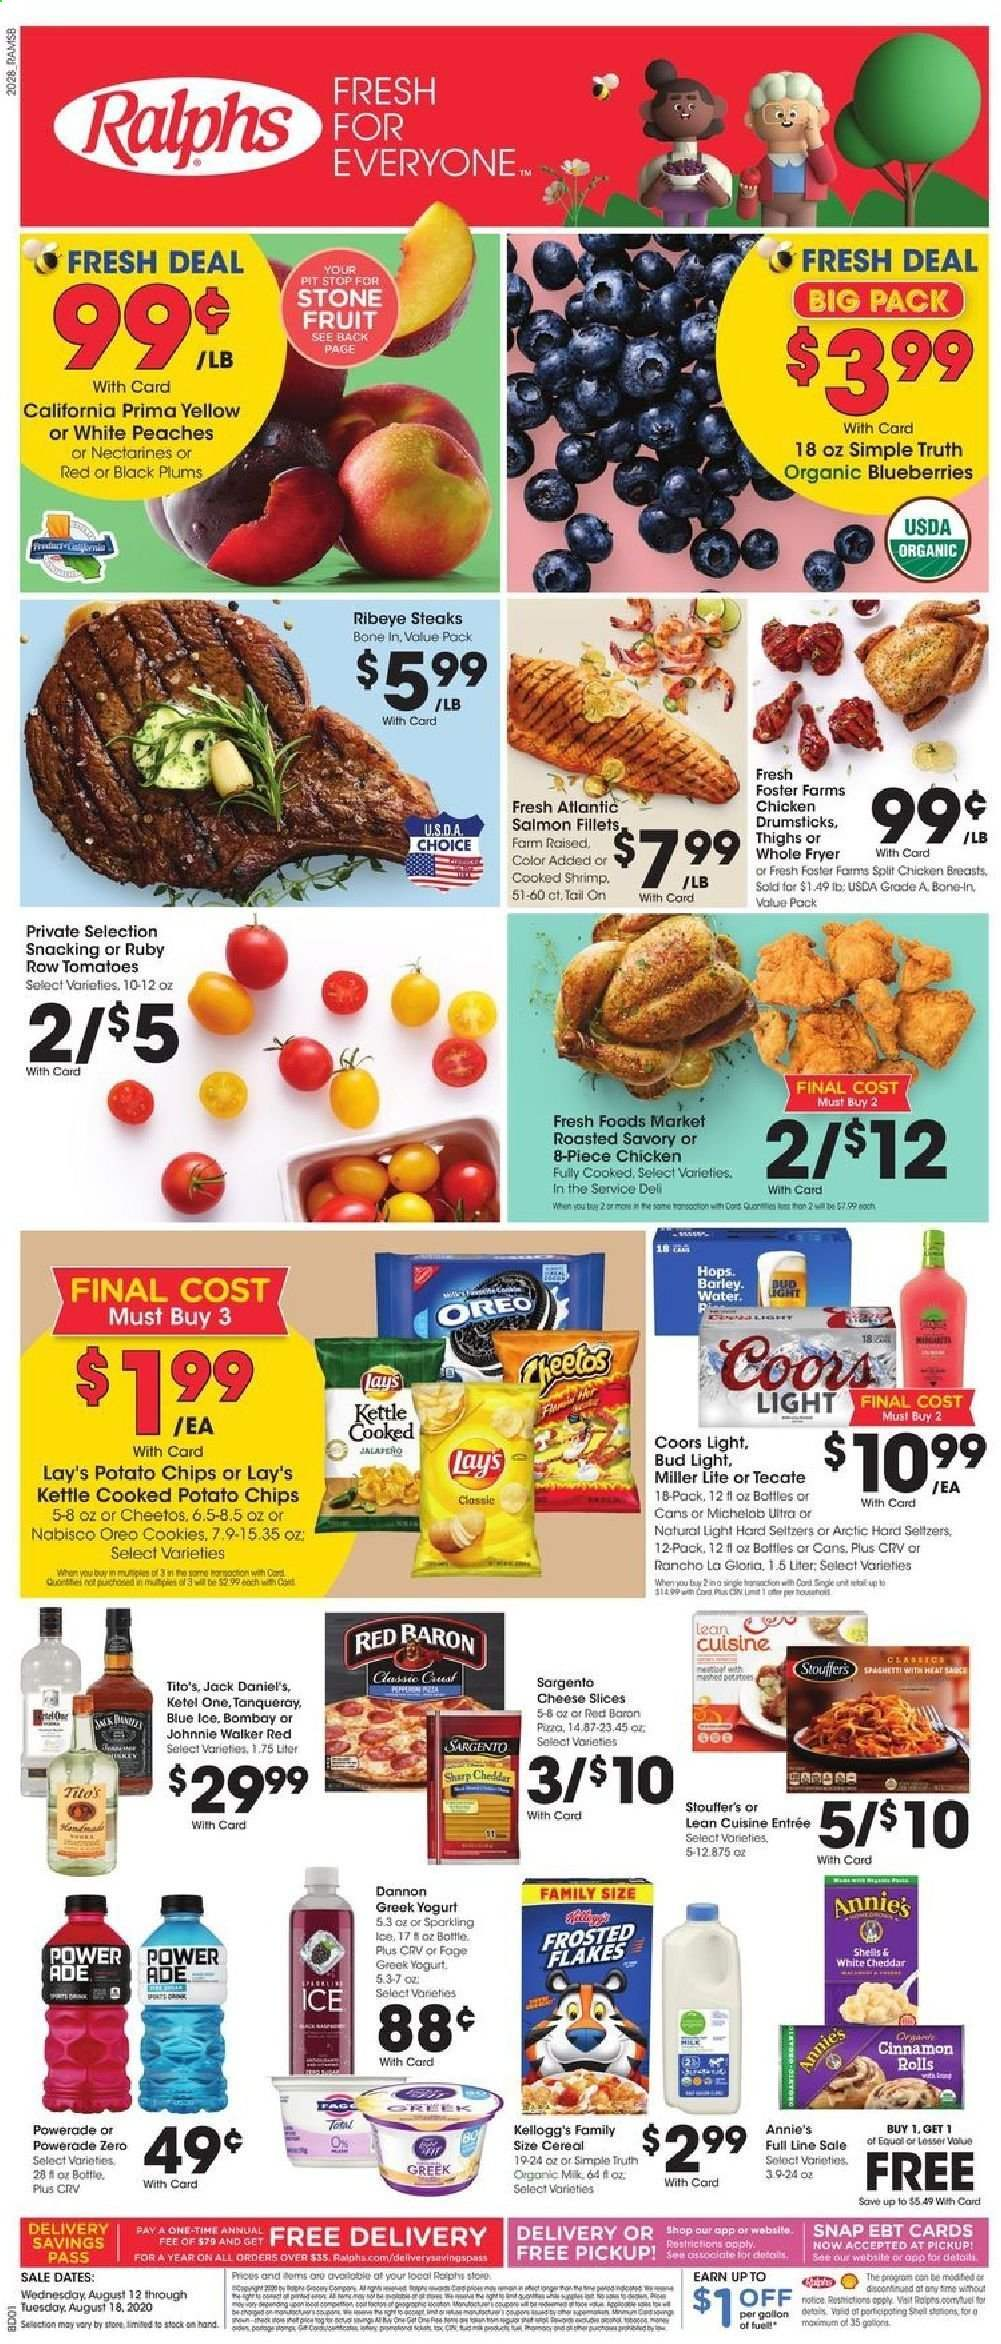 Ralphs Flyer - 08.12.2020 - 08.18.2020 - Sales products - barley, blueberries, bottle, cereals, cinnamon rolls, cookies, dates, fryer, greek yogurt, miller lite, nectarines, salmon, sharp, shrimp, tomatoes, yogurt, jack daniel's, pizza, plums, potato chips, powerade, cheddar, cheetos, chicken, chicken breast, chicken drumsticks, peaches, oreo, organic, chips, cereal, bud light, lay's, flakes, fruit, miller, coors, michelob, shrimps, tomato, chicken breasts, kettle, peache. Page 1.